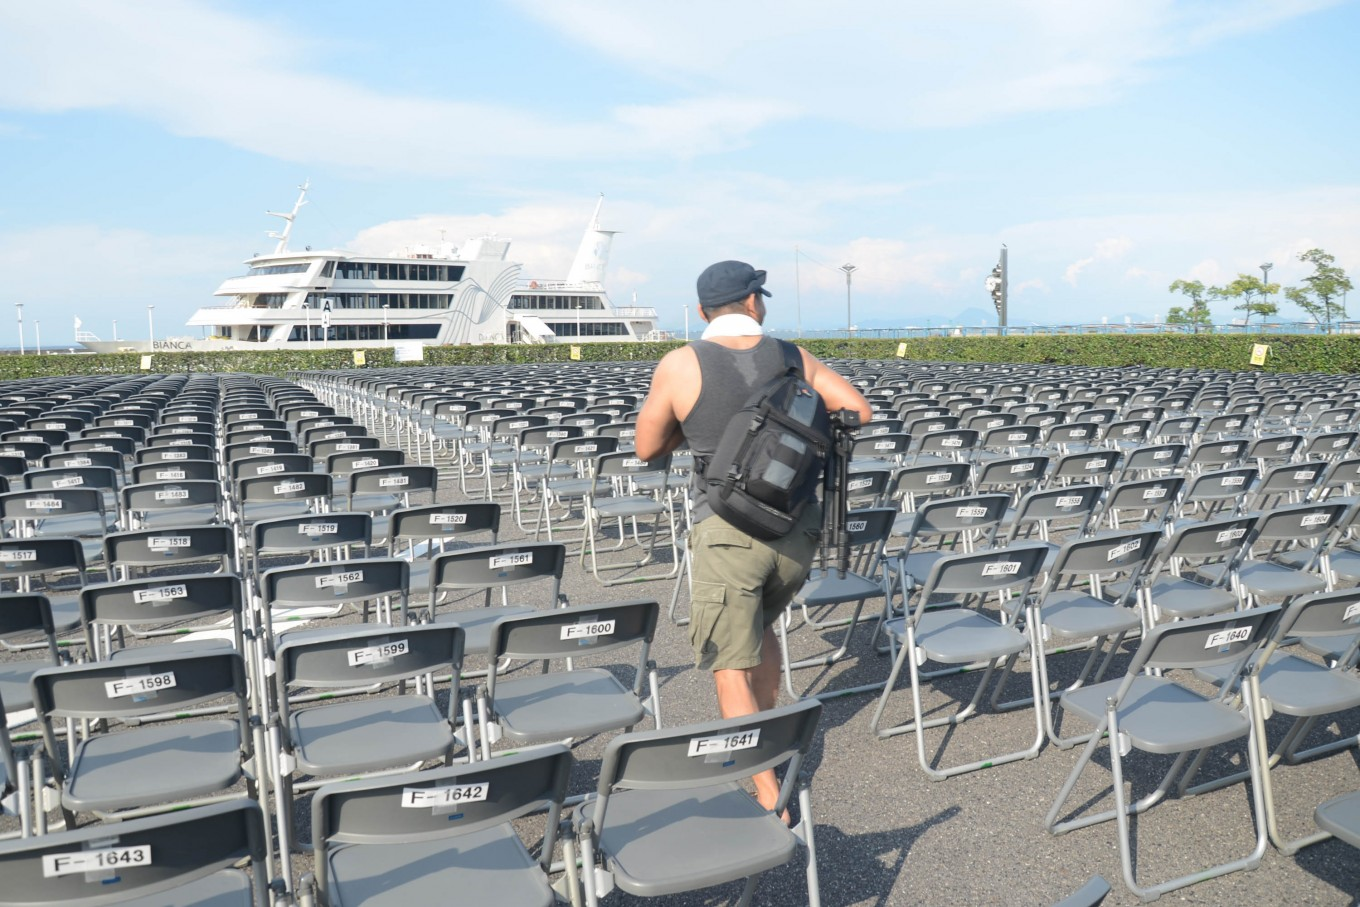 Thousands of tickets entitling visitors to a seat typically sell out before the festivals begin. JP/Tarko Sudiarno